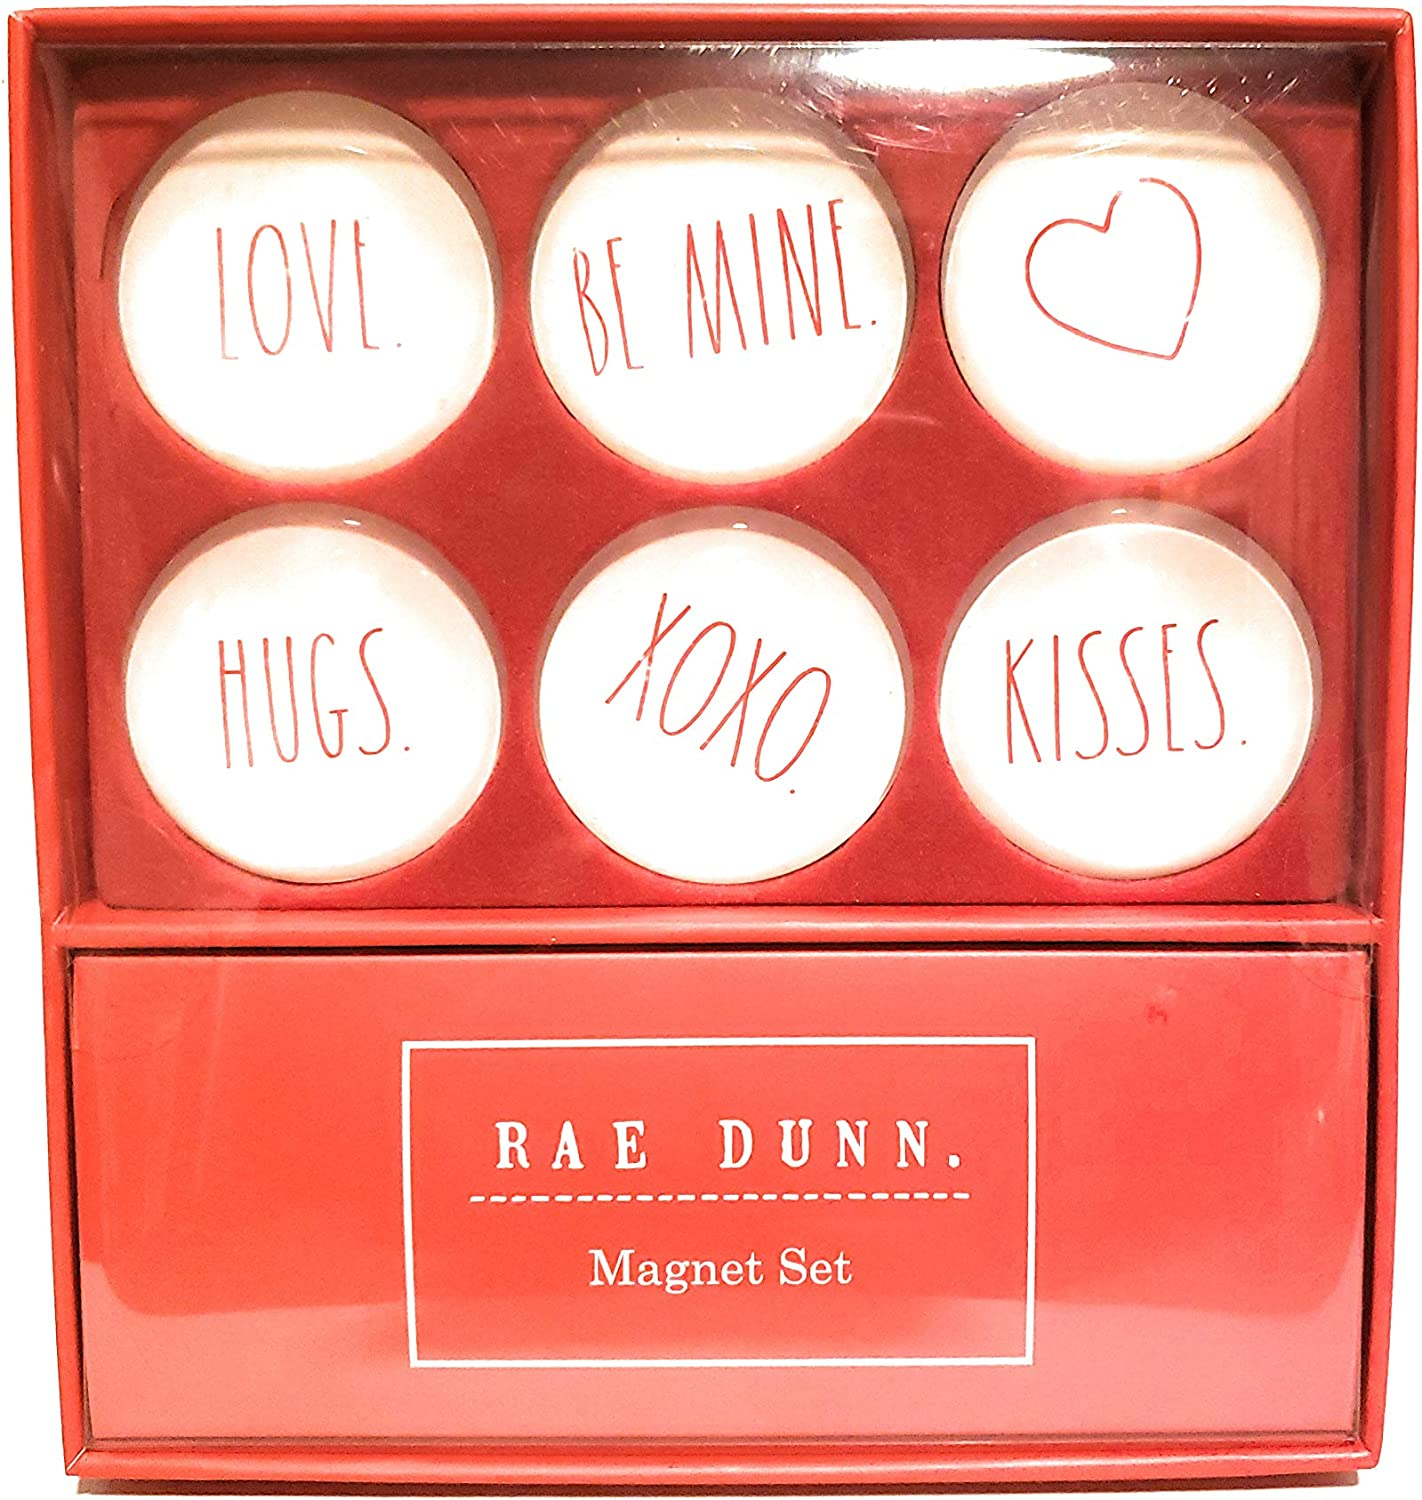 Rae Dunn 6 Piece Glass-Dome Magnet, Red, Valentines Day- LOVE, BE MINE, HUGS, XOXO, KISSES, Heart